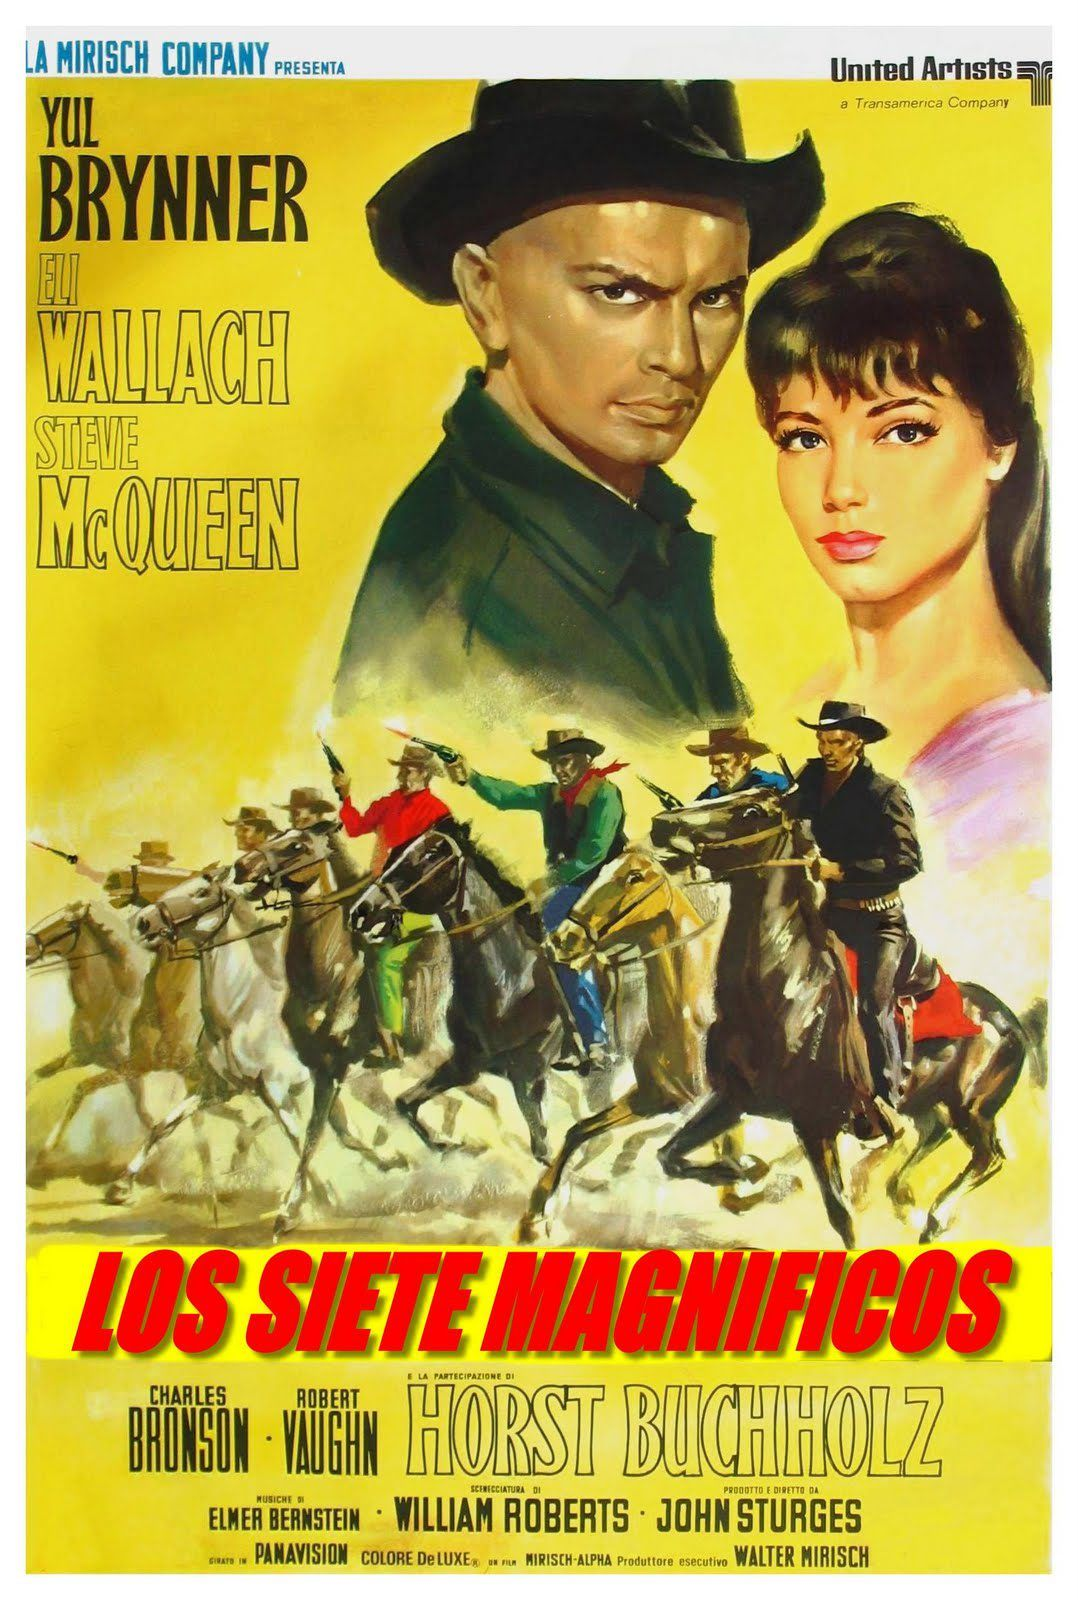 Los 7 Magnificos The Magnificent Seven 1960 Con Yul Brynner Steve Mcqueen Charles Bronson Eli W Magnificent Seven Movie Western Film The Magnificent Seven